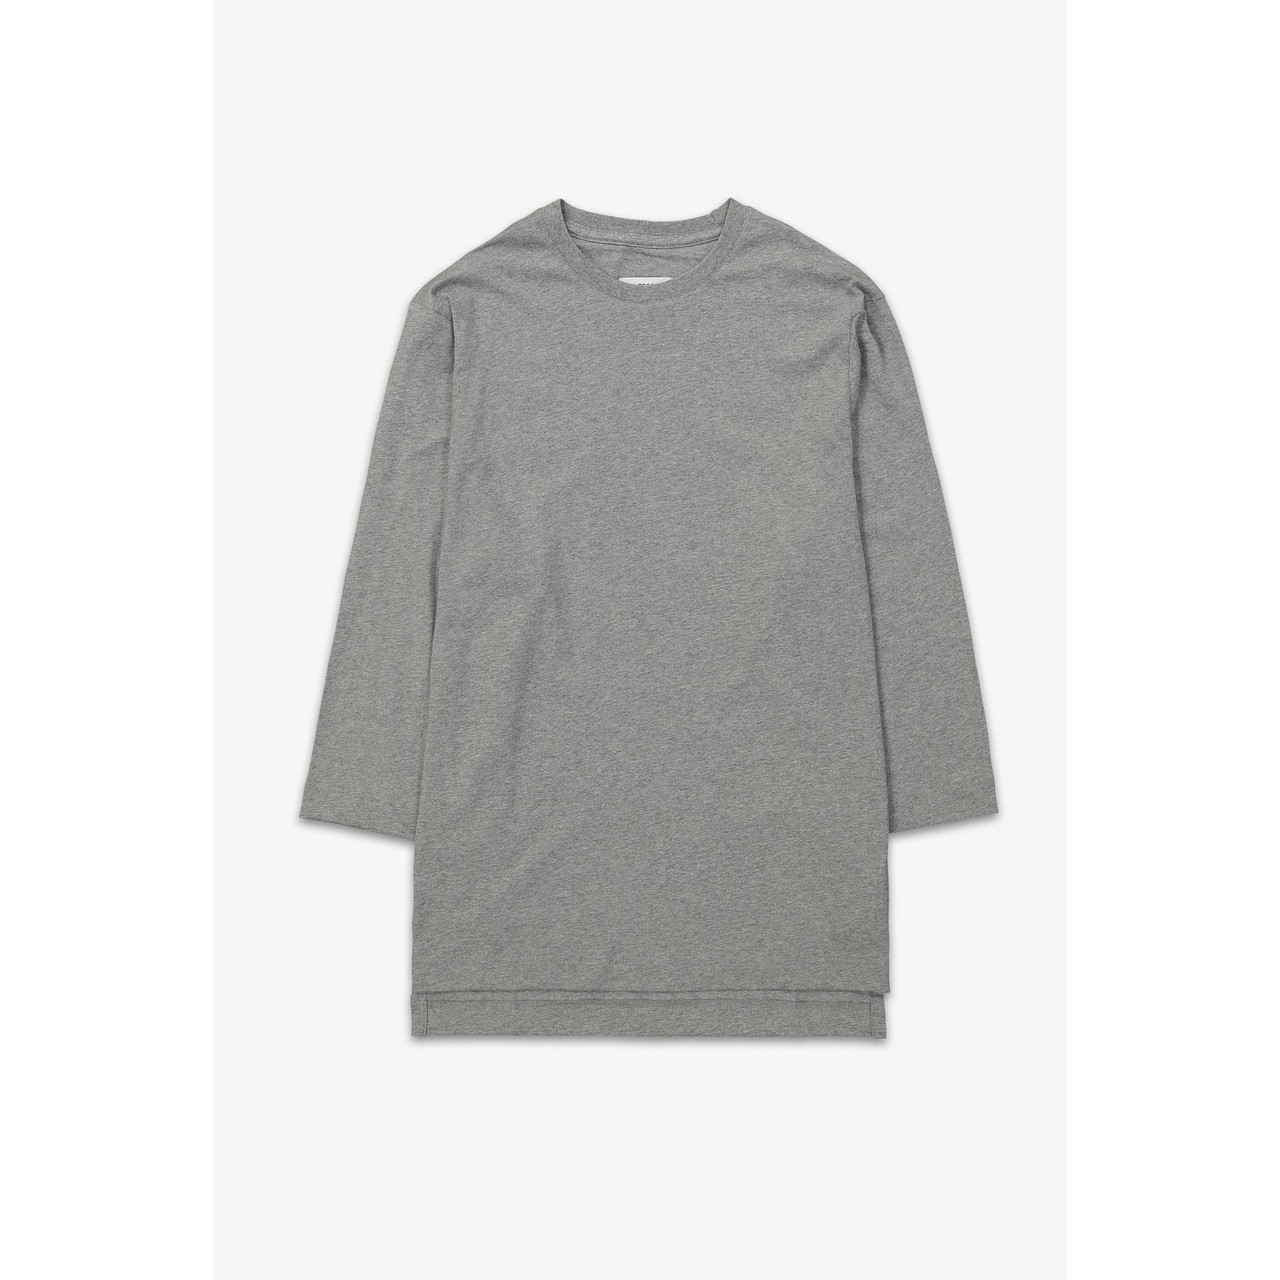 Coltesse Toliman Tee in Heather Grey